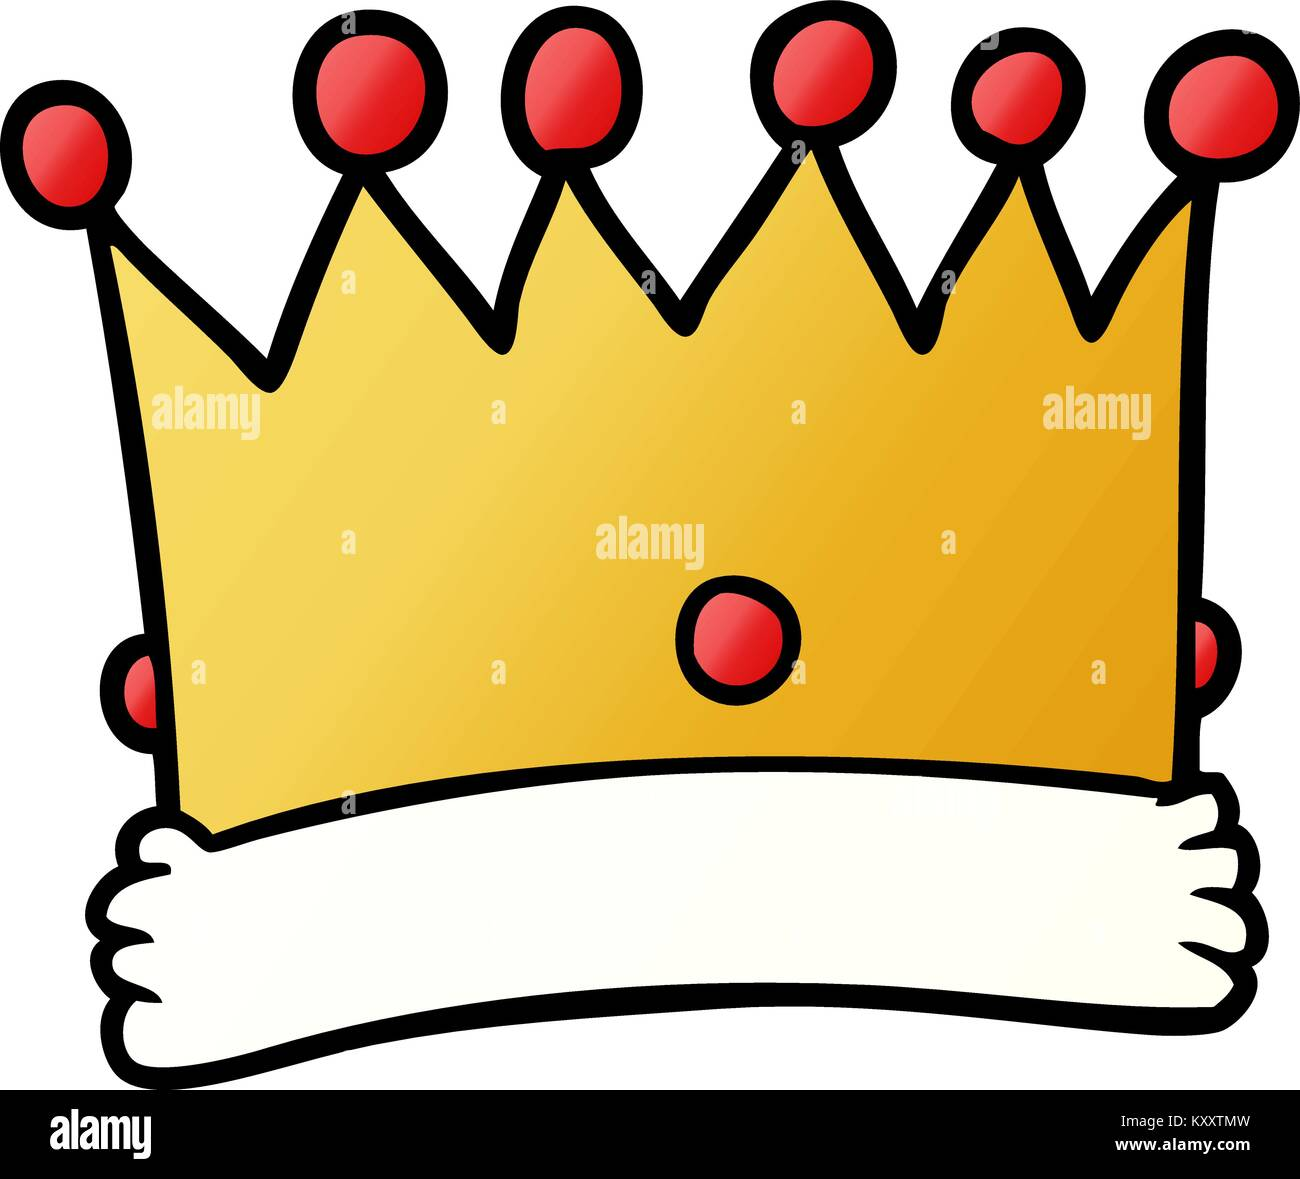 Cartoon Royal Crown High Resolution Stock Photography And Images Alamy Find the best crown wallpapers on getwallpapers. https www alamy com stock photo cartoon crown 171464521 html